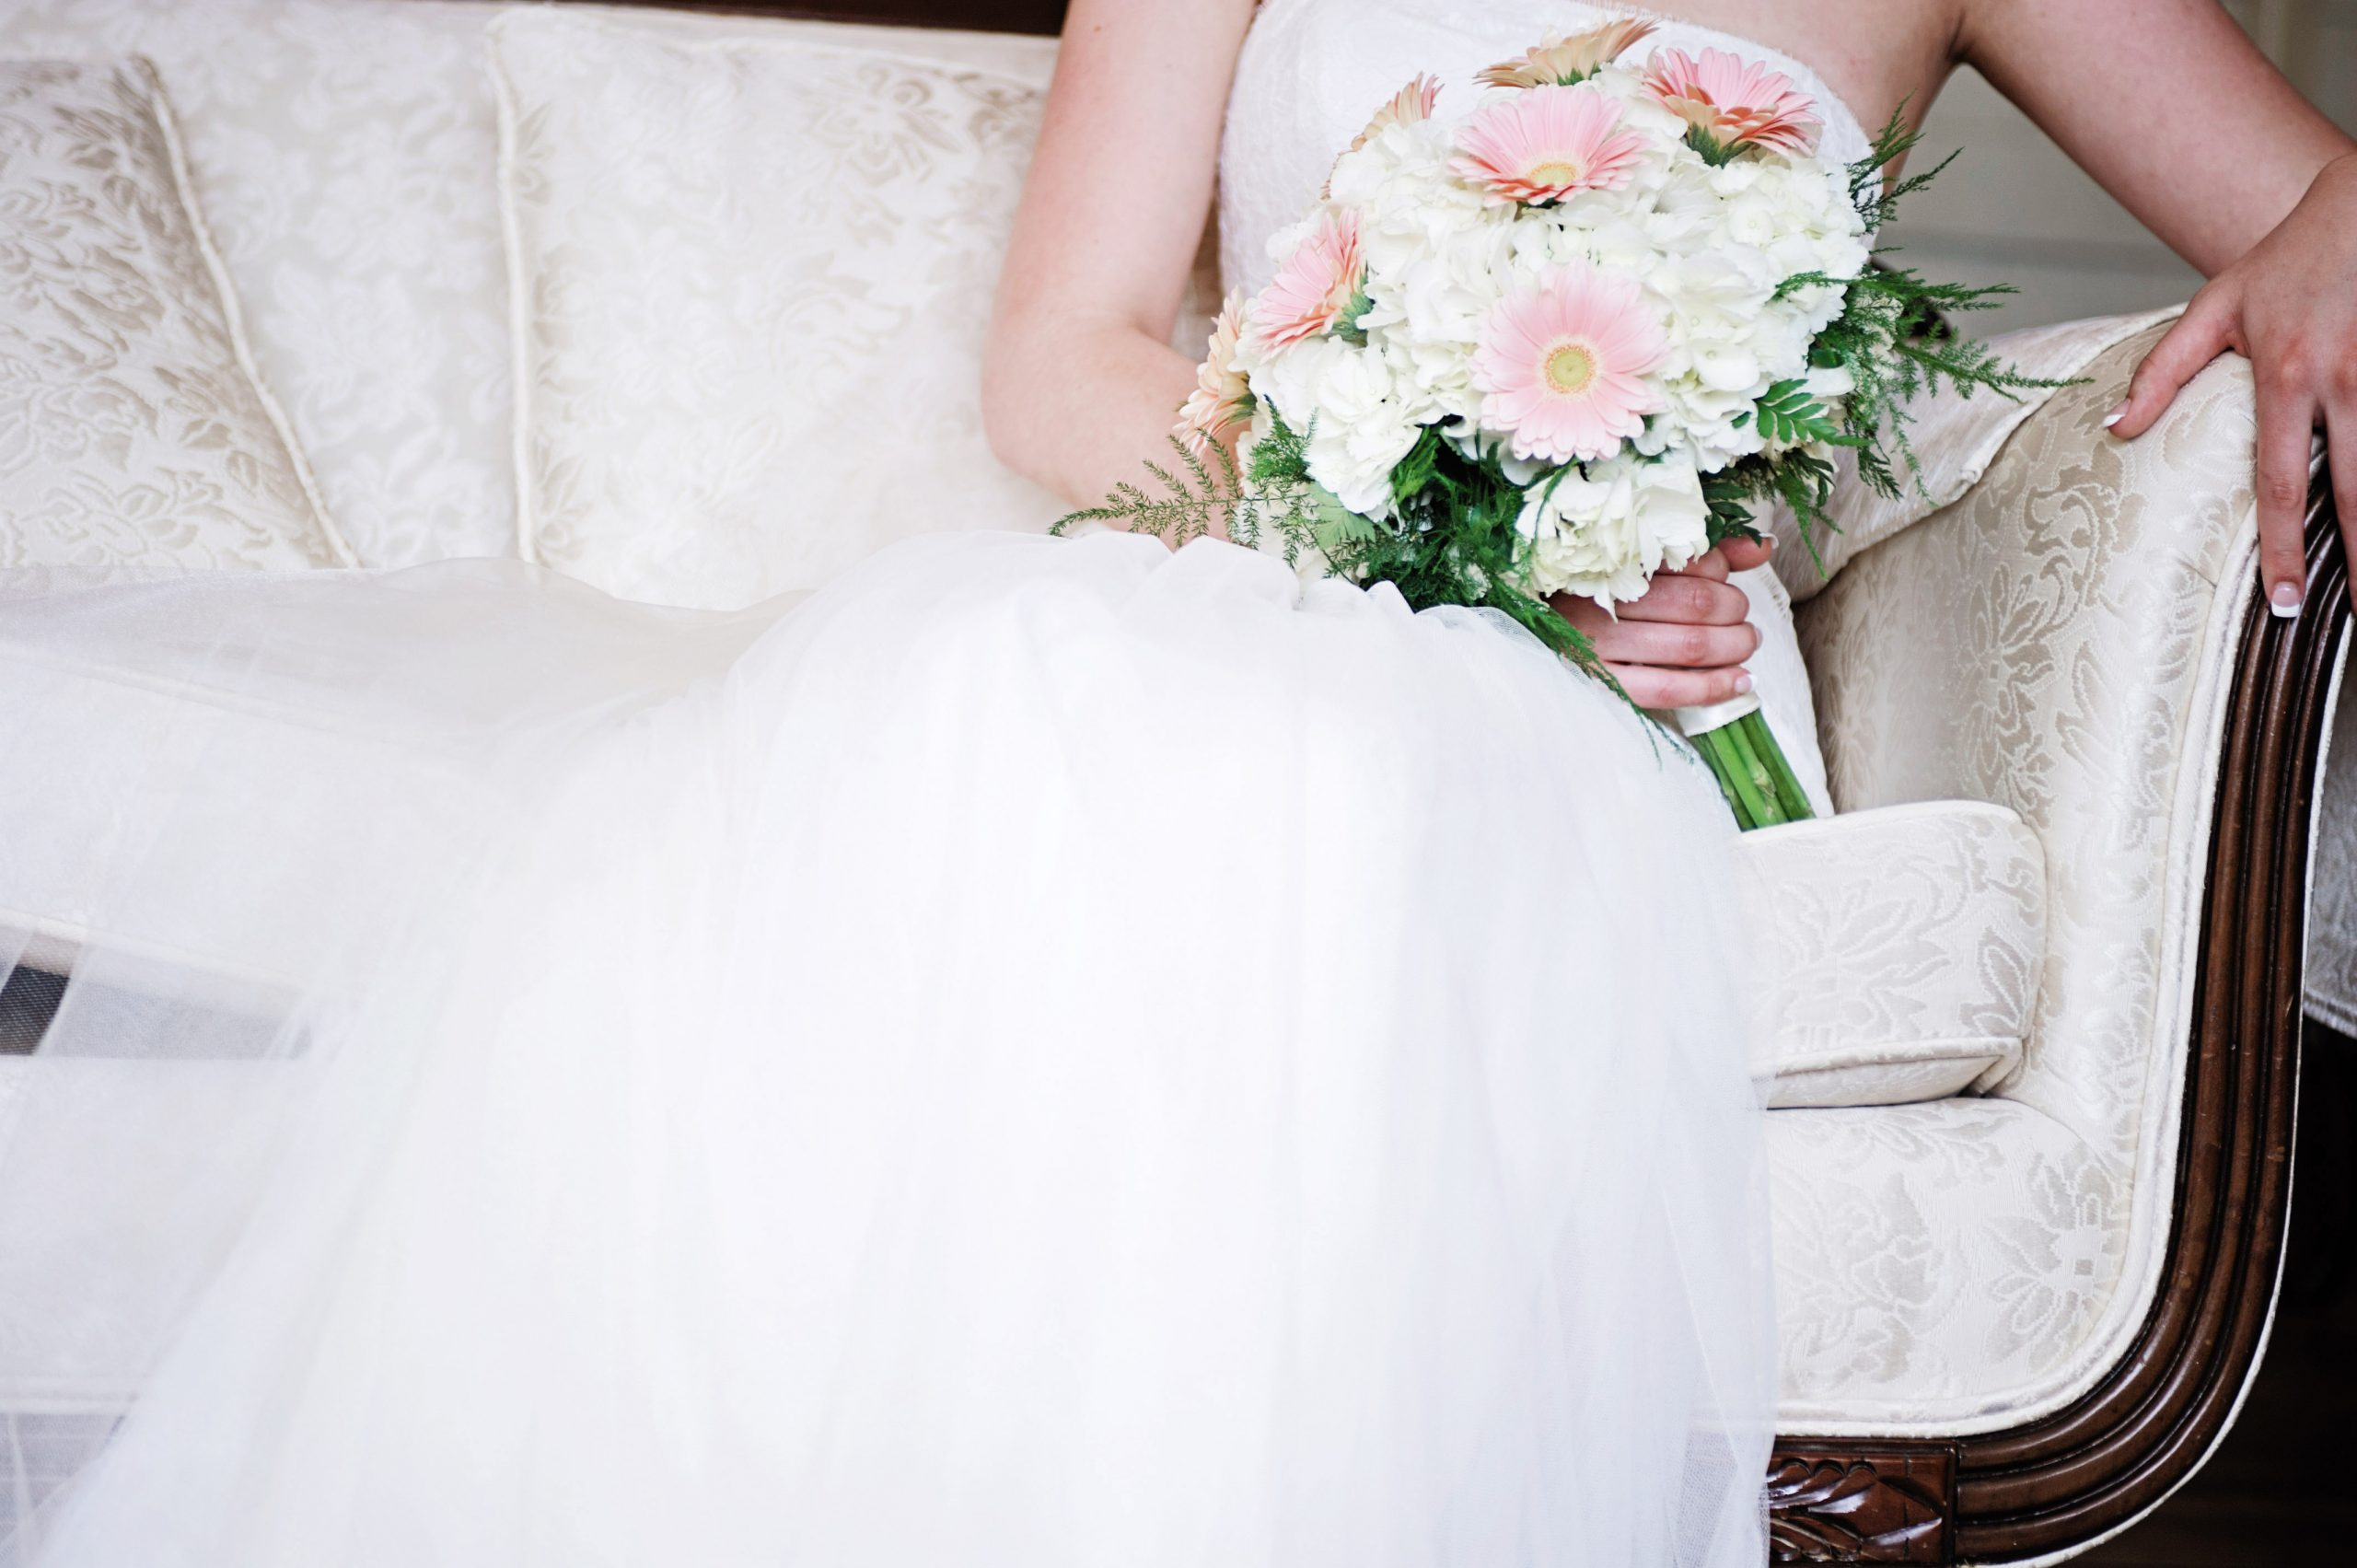 An eegant, romantic take on the bride in the bride's suite of Lakeview Farms in York, PA. Lovefusion Photography taking the time to capture the details. Featured in Dream Weddings.